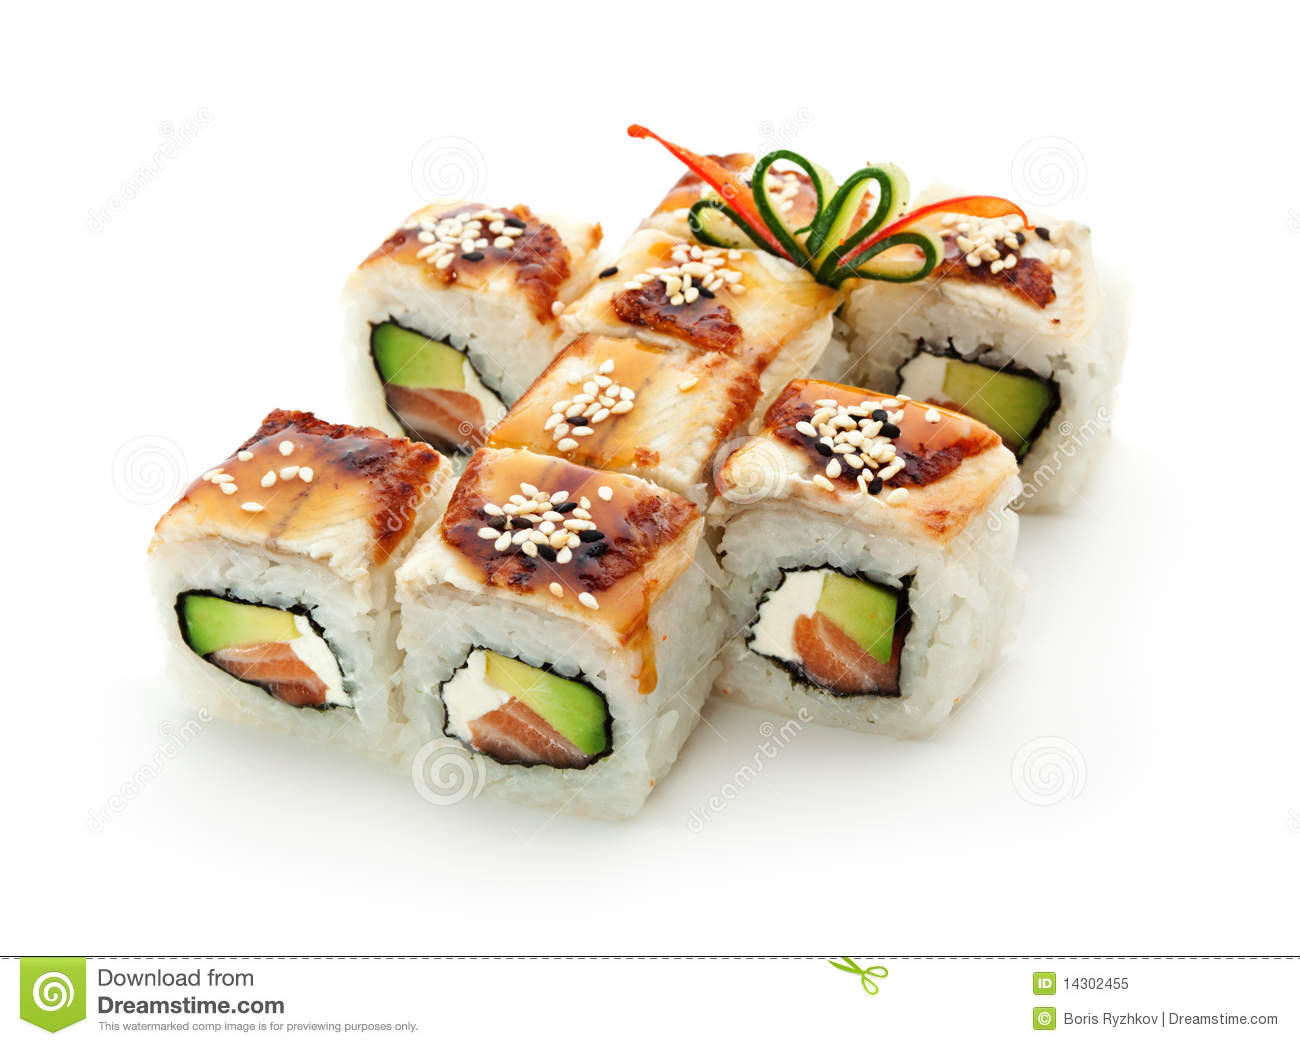 ... Salmon, Cream Cheese and Avocado inside. Topped with Smoked Eel (unagi